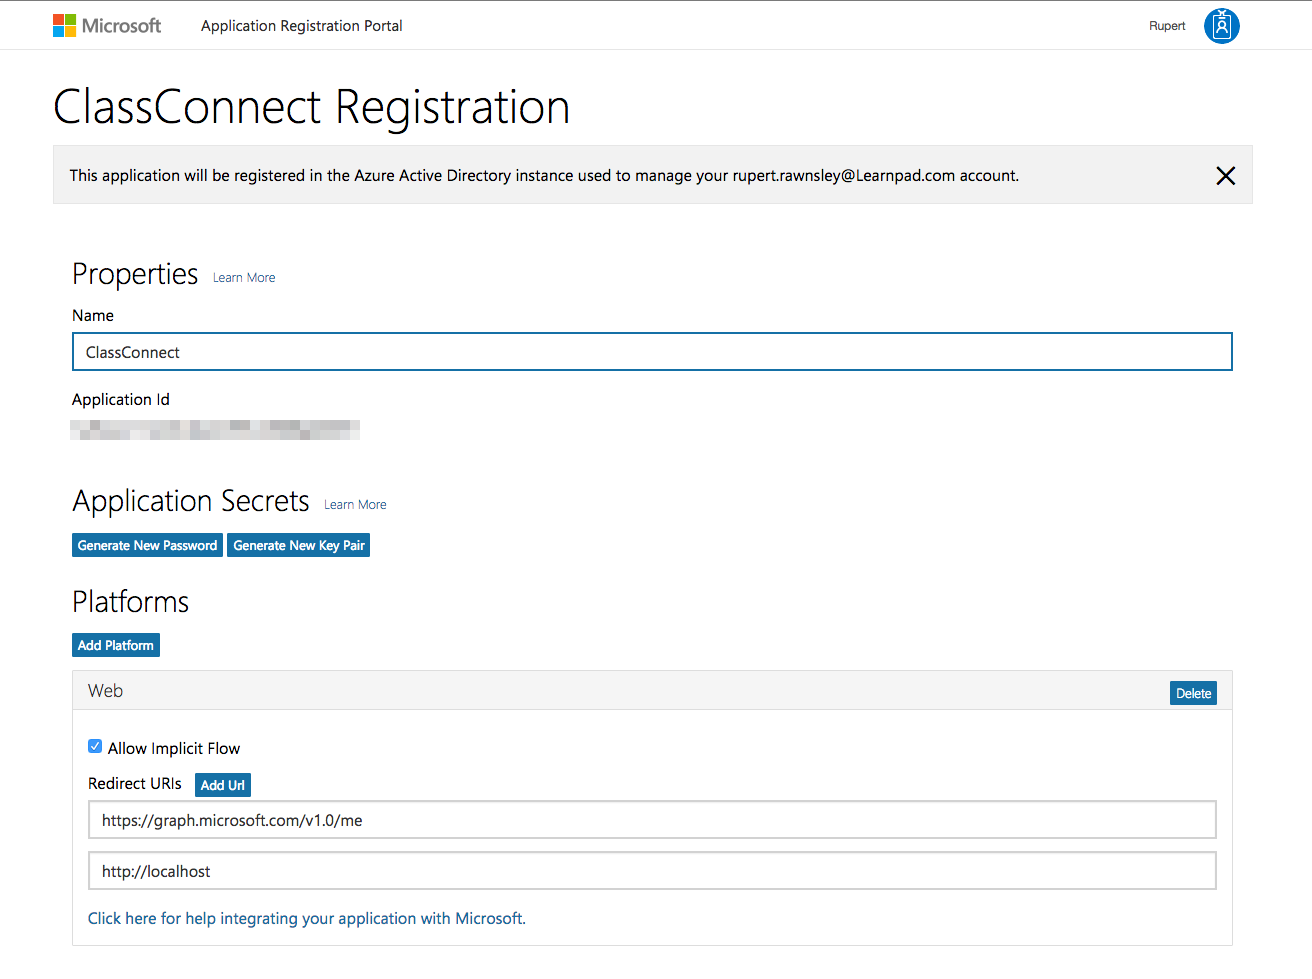 Sample for using Microsoft Account as an Identity provider